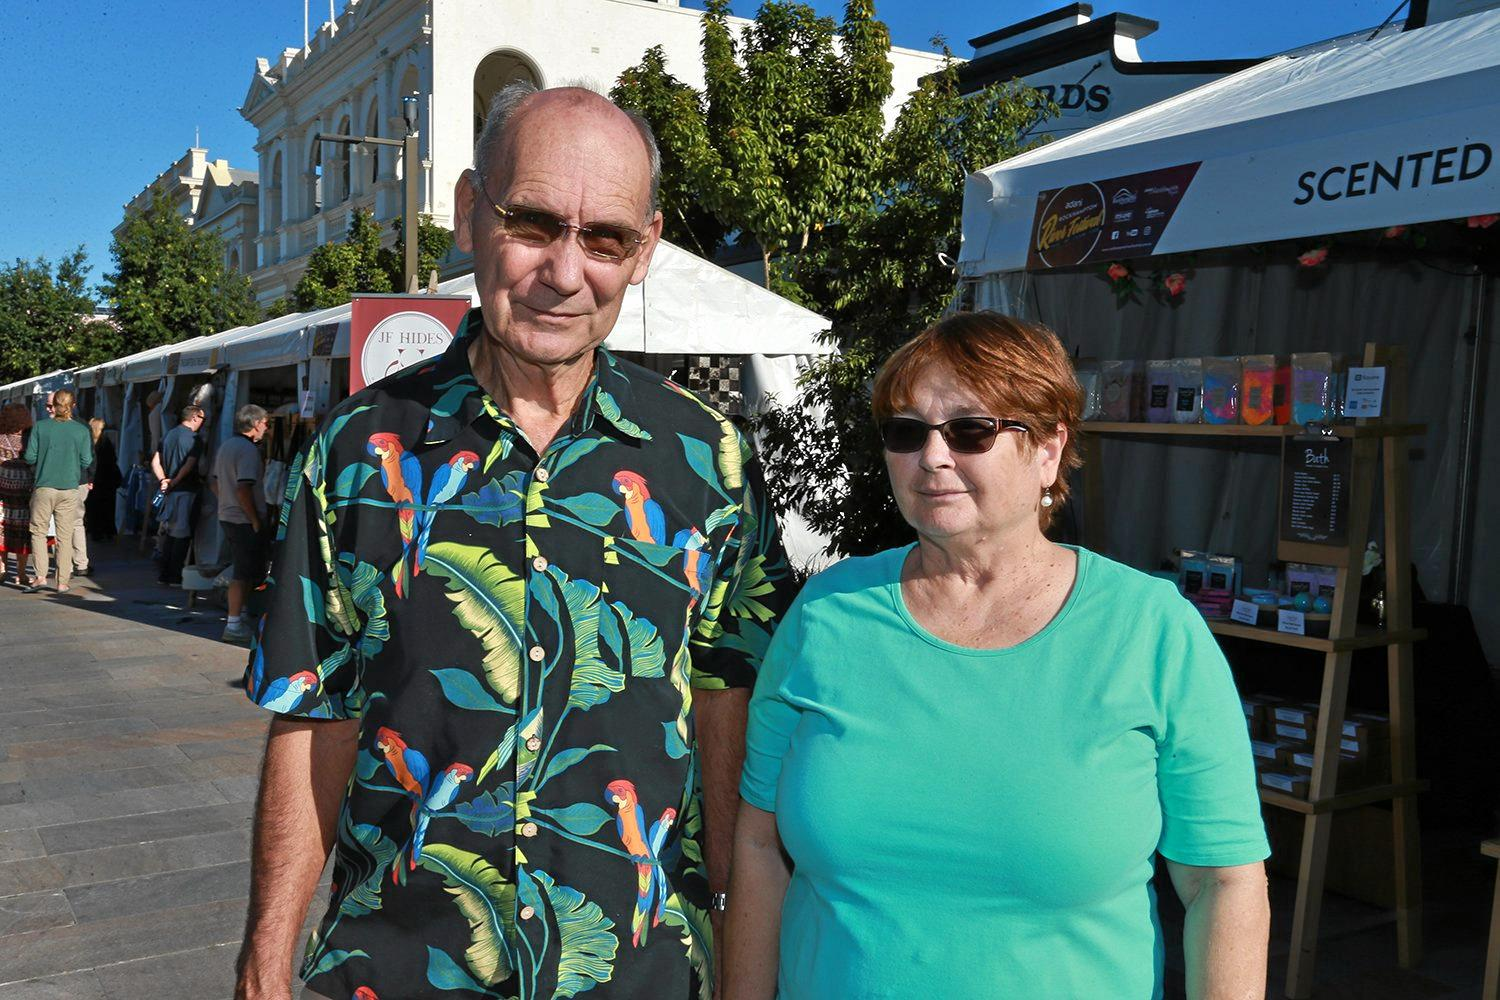 VALE: Austin Grillmeier and Jenny Grillmeier at the River Festival last year. Mr Grillmeier died from flu on Monday.